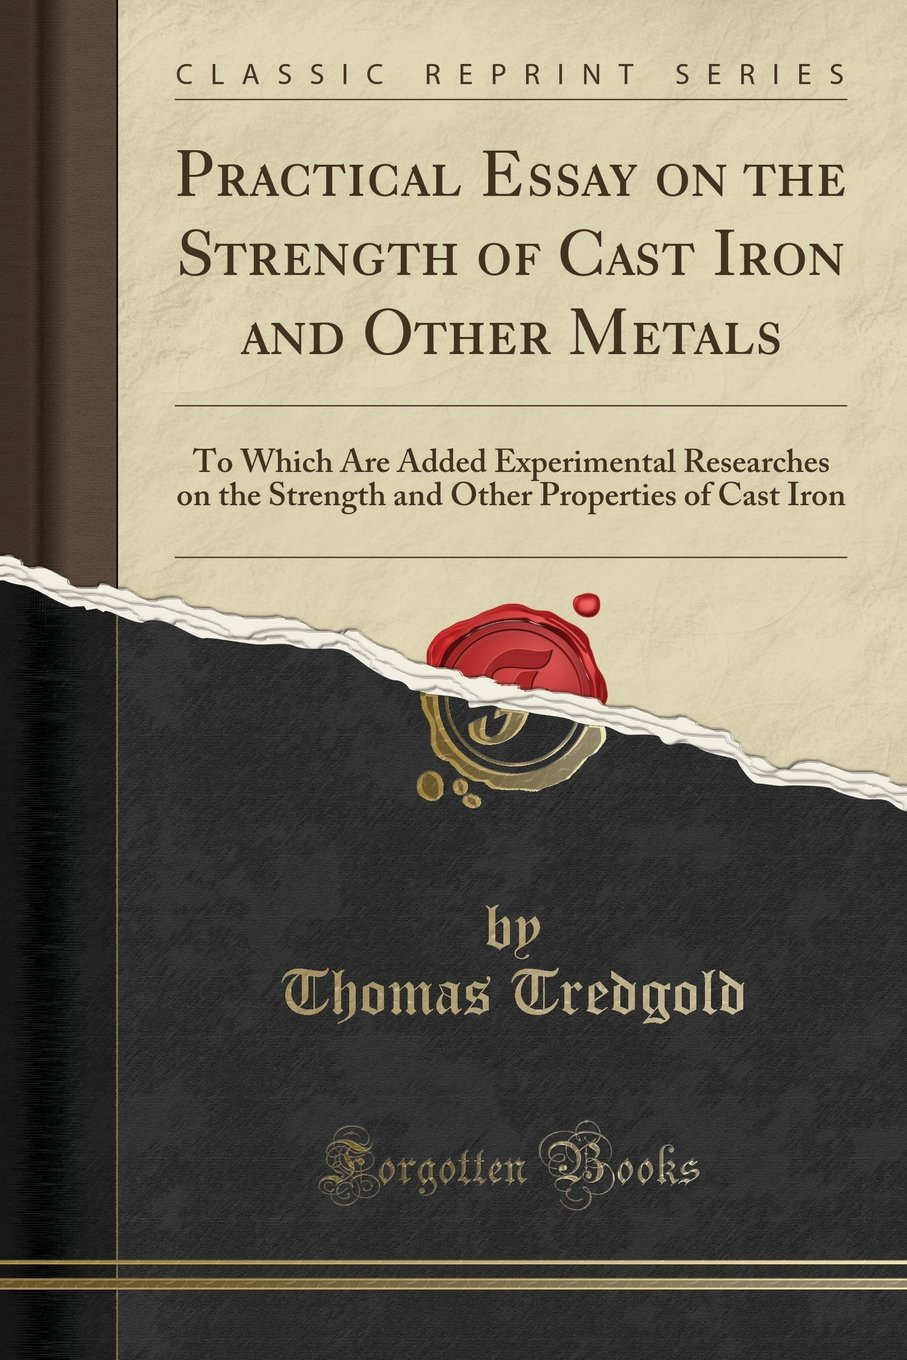 Download Practical Essay on the Strength of Cast Iron and Other Metals: To Which Are Added Experimental Researches on the Strength and Other Properties of Cast Iron (Classic Reprint) ebook